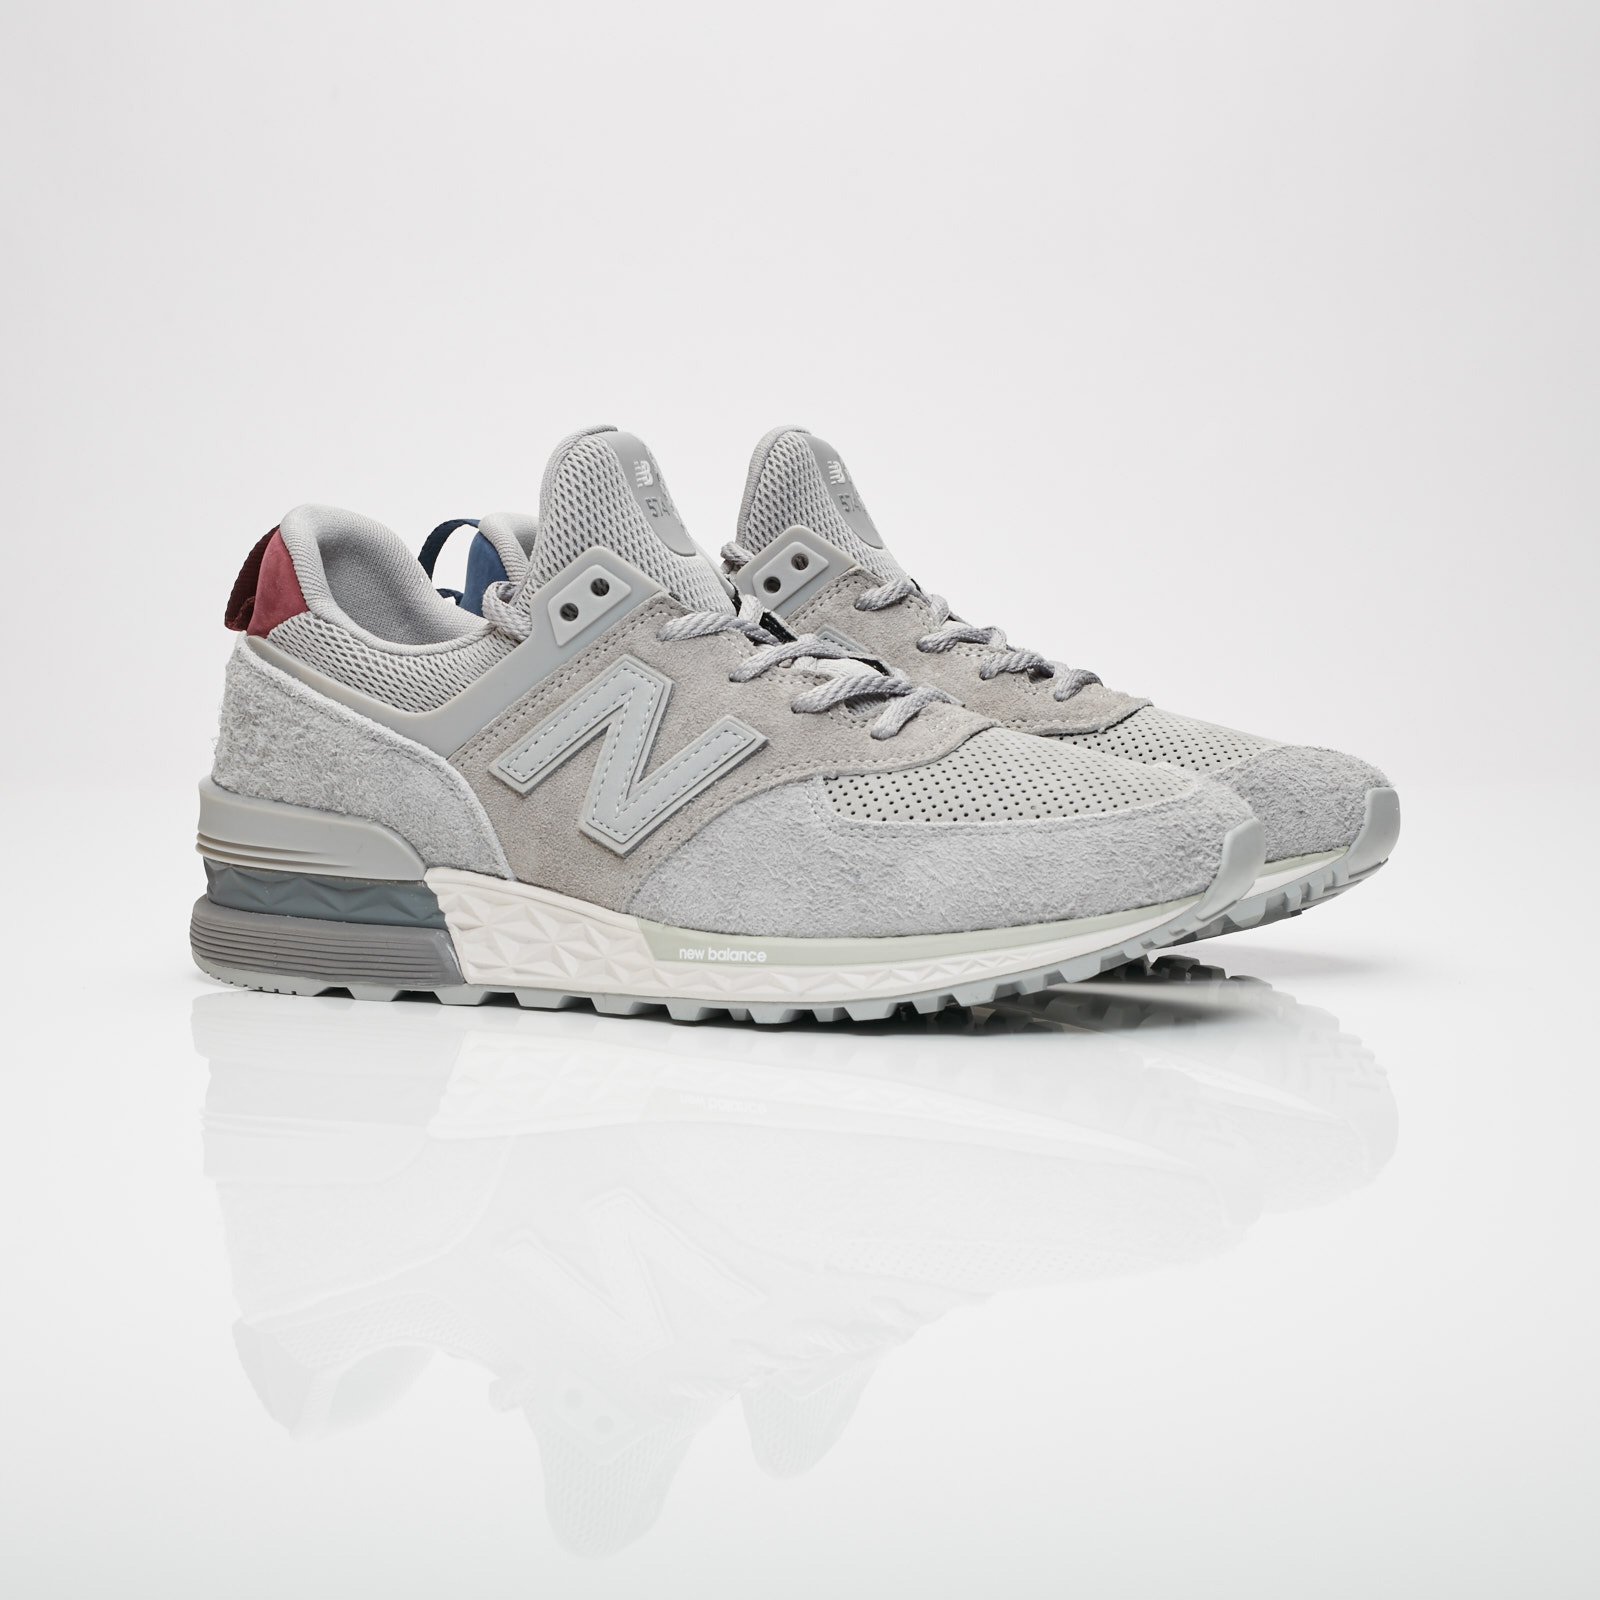 New Balance MS574 Peaks to Streets - Ms574of - Sneakersnstuff I ...